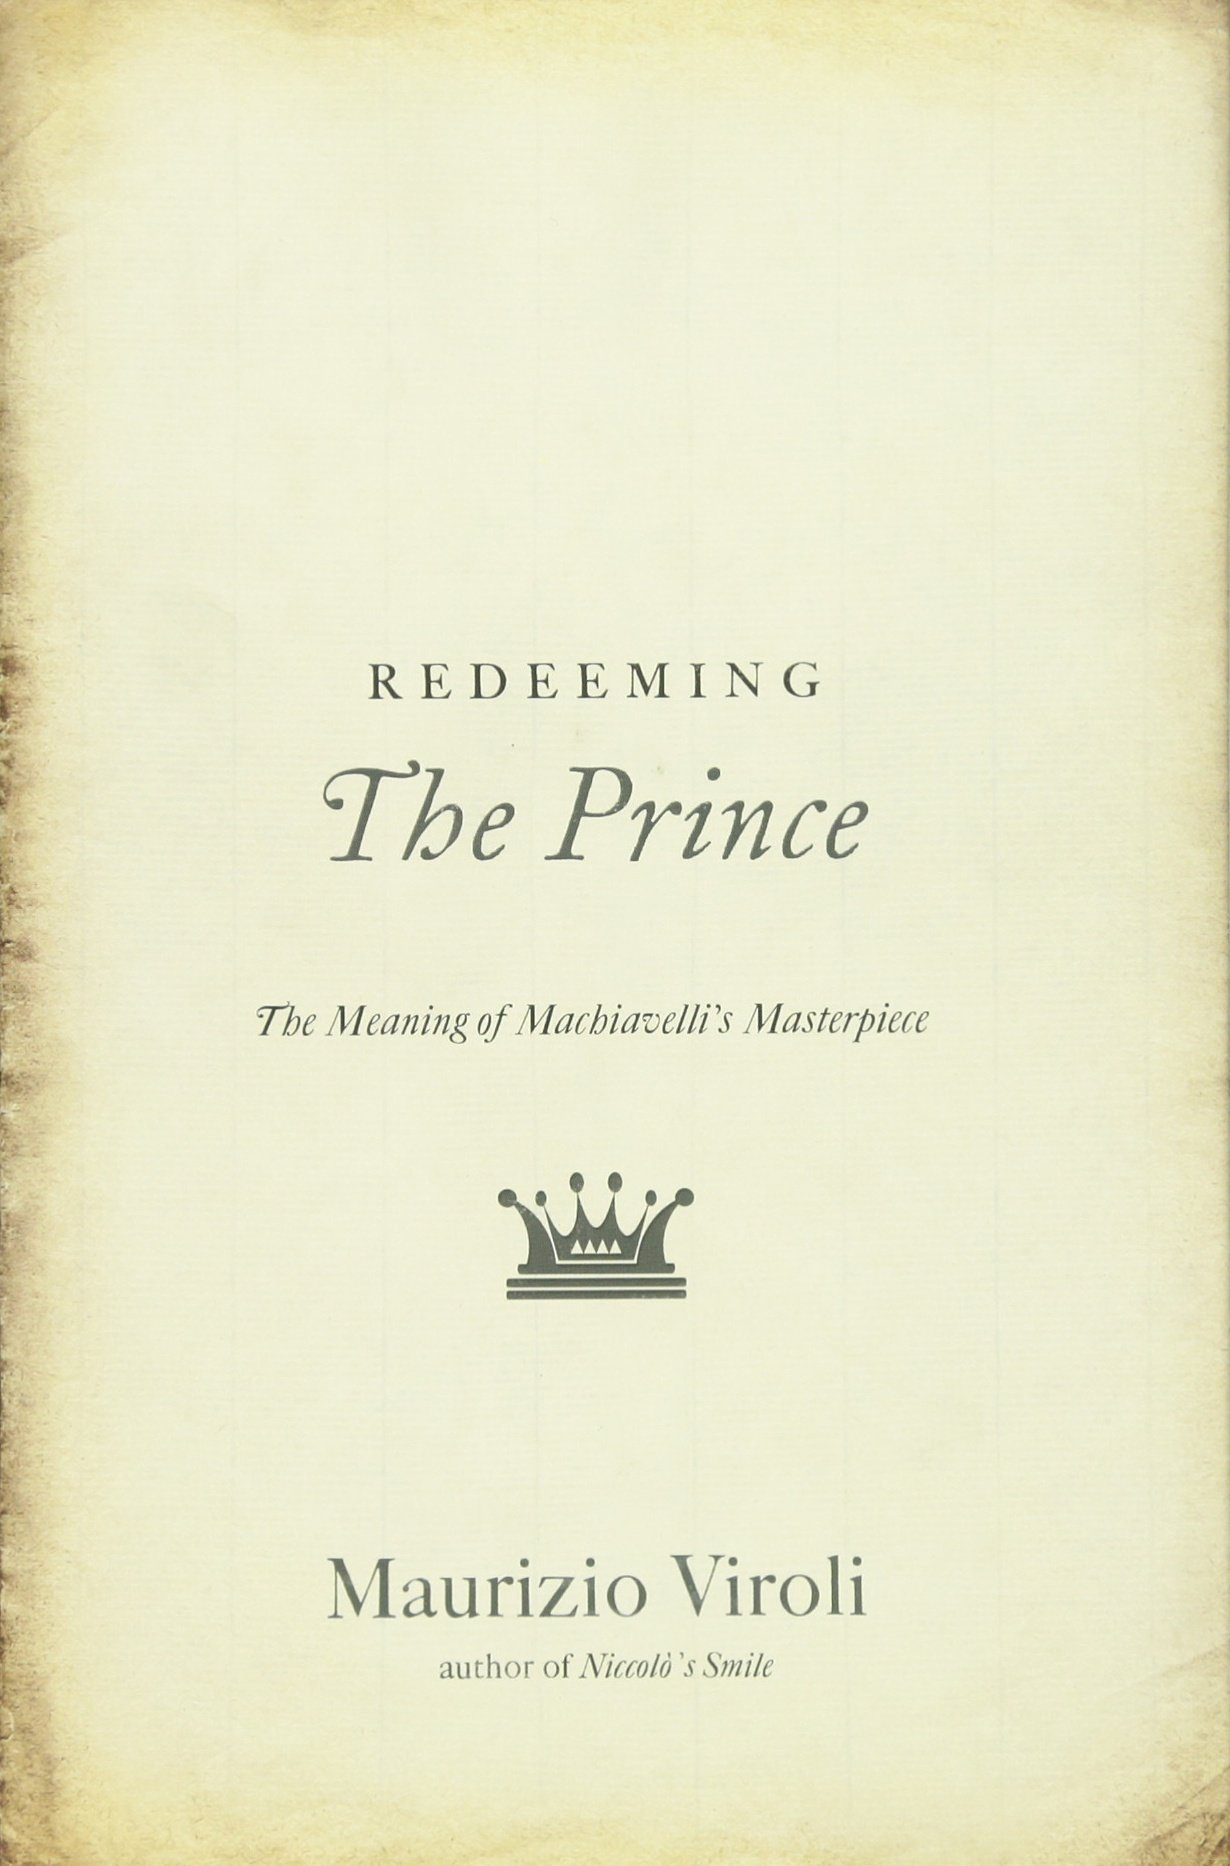 """Redeeming """"The Prince"""": The Meaning of Machiavelli's Masterpiece pdf"""